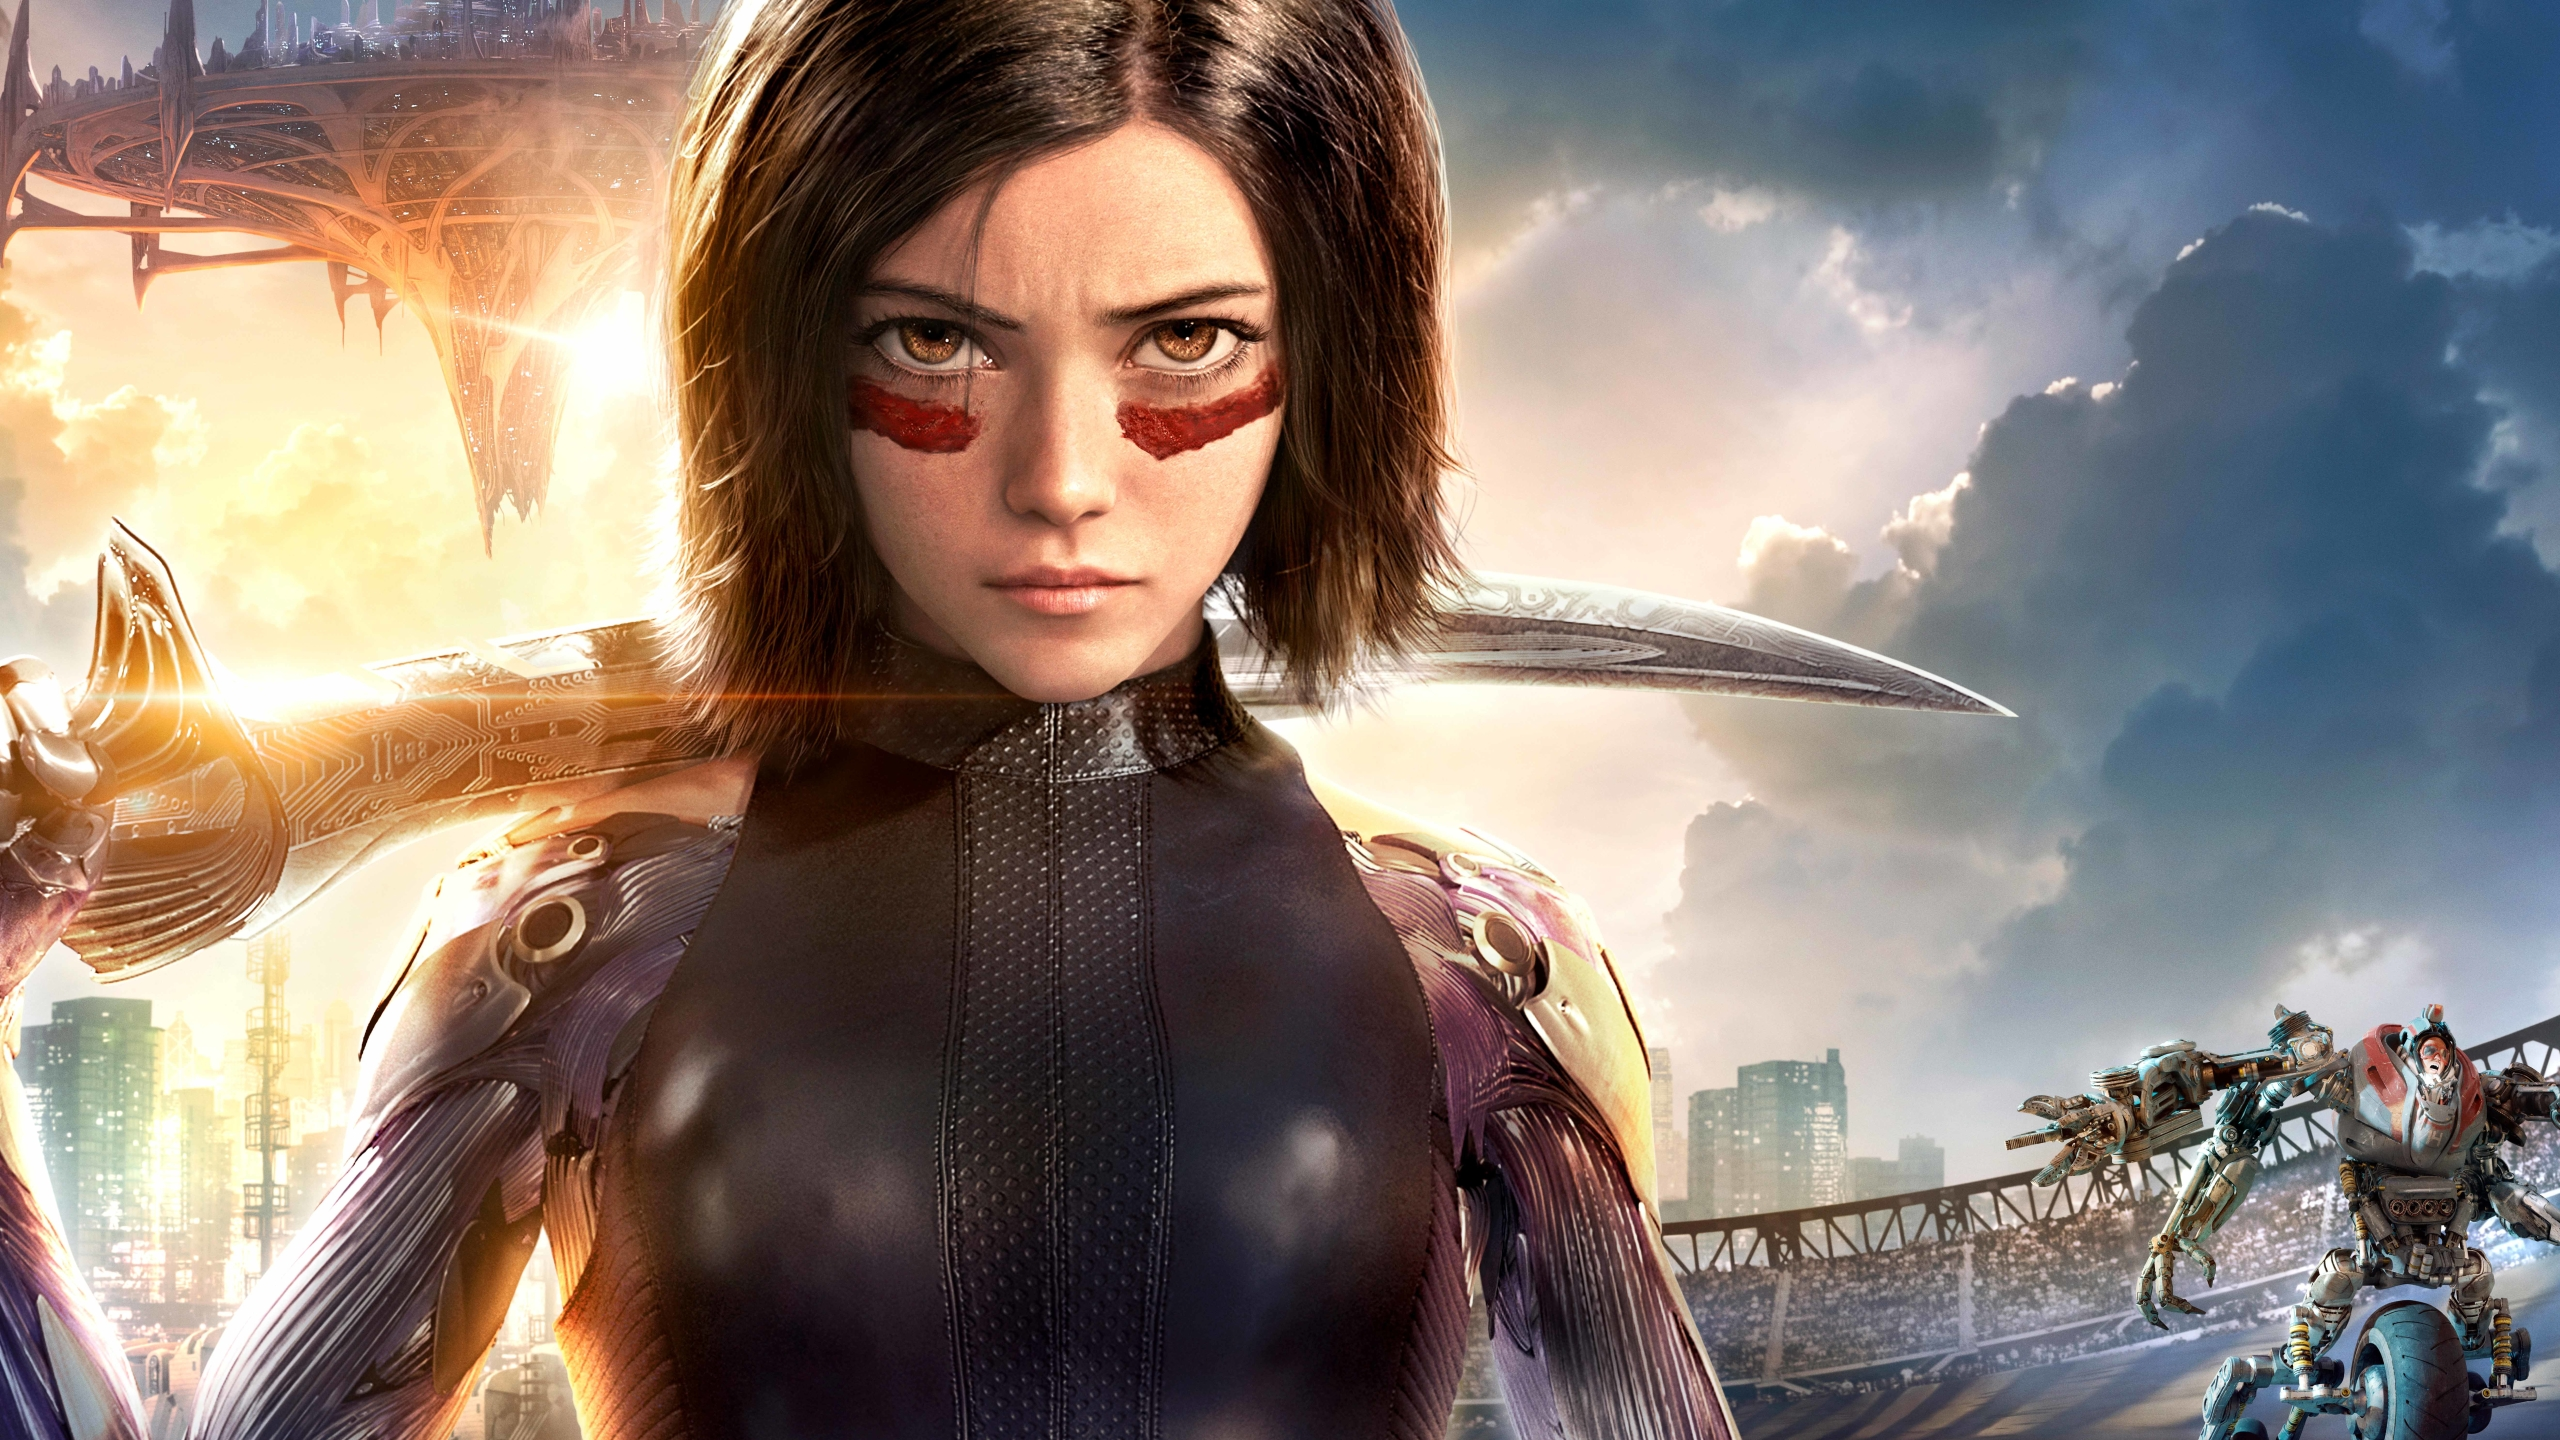 2560x1440 Alita Battle Angel 1440p Resolution Wallpaper Hd Movies